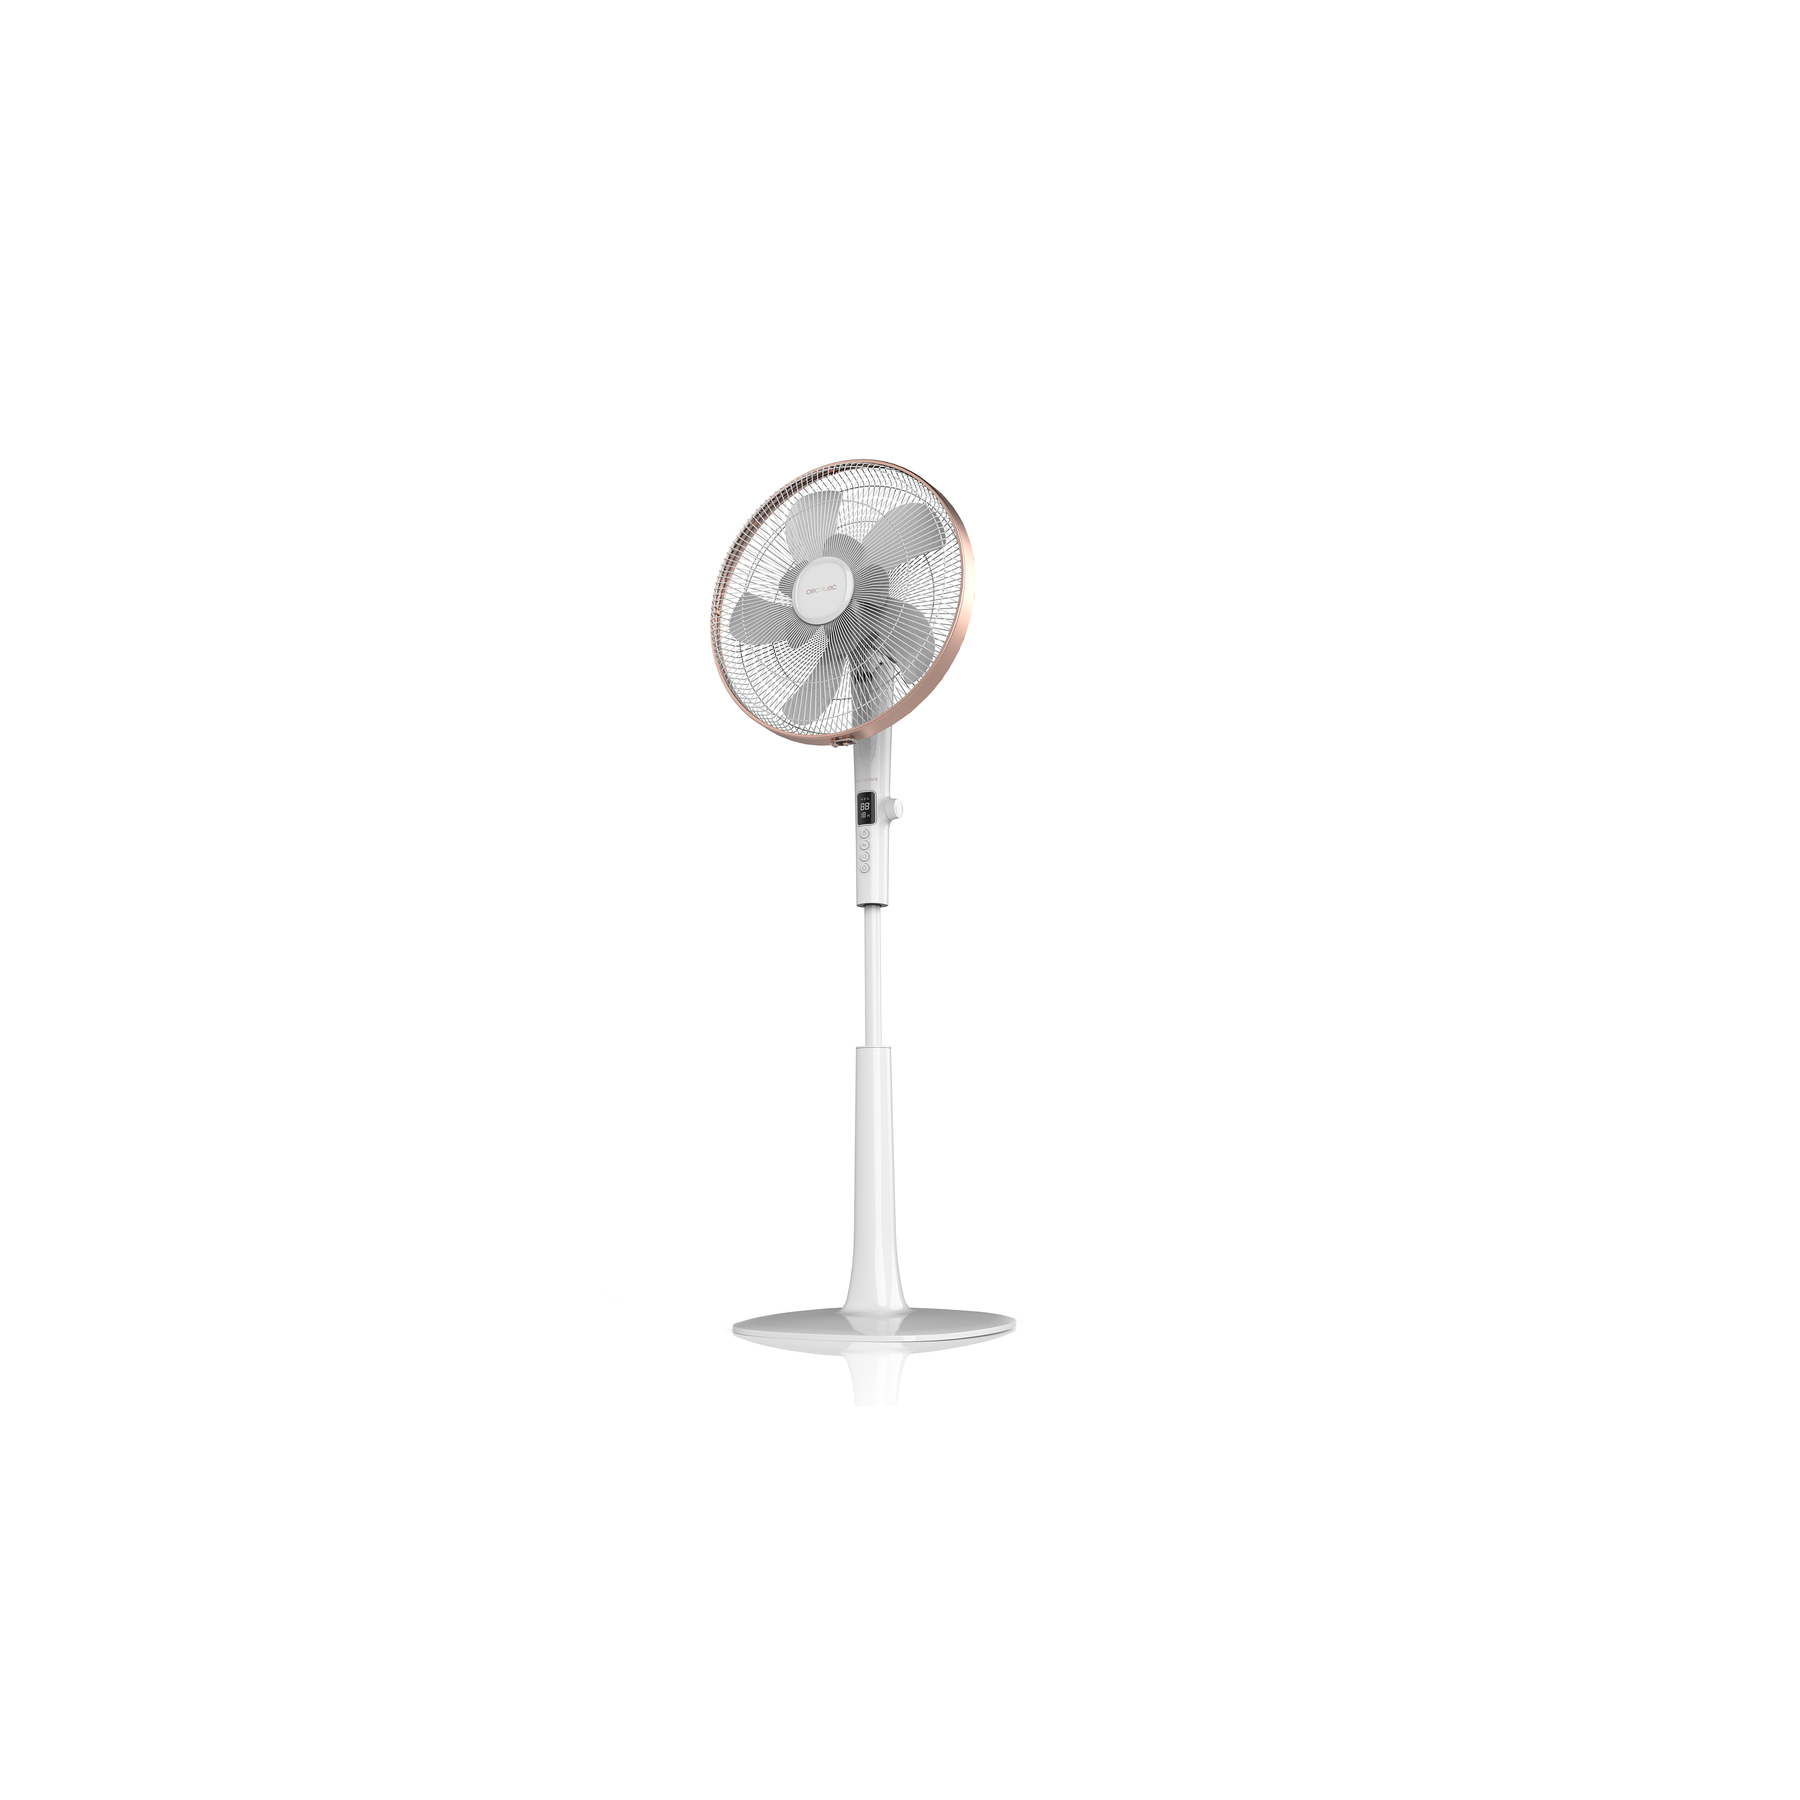 Cecotec Standing Fan ForceSilence 1030 SmartExtreme